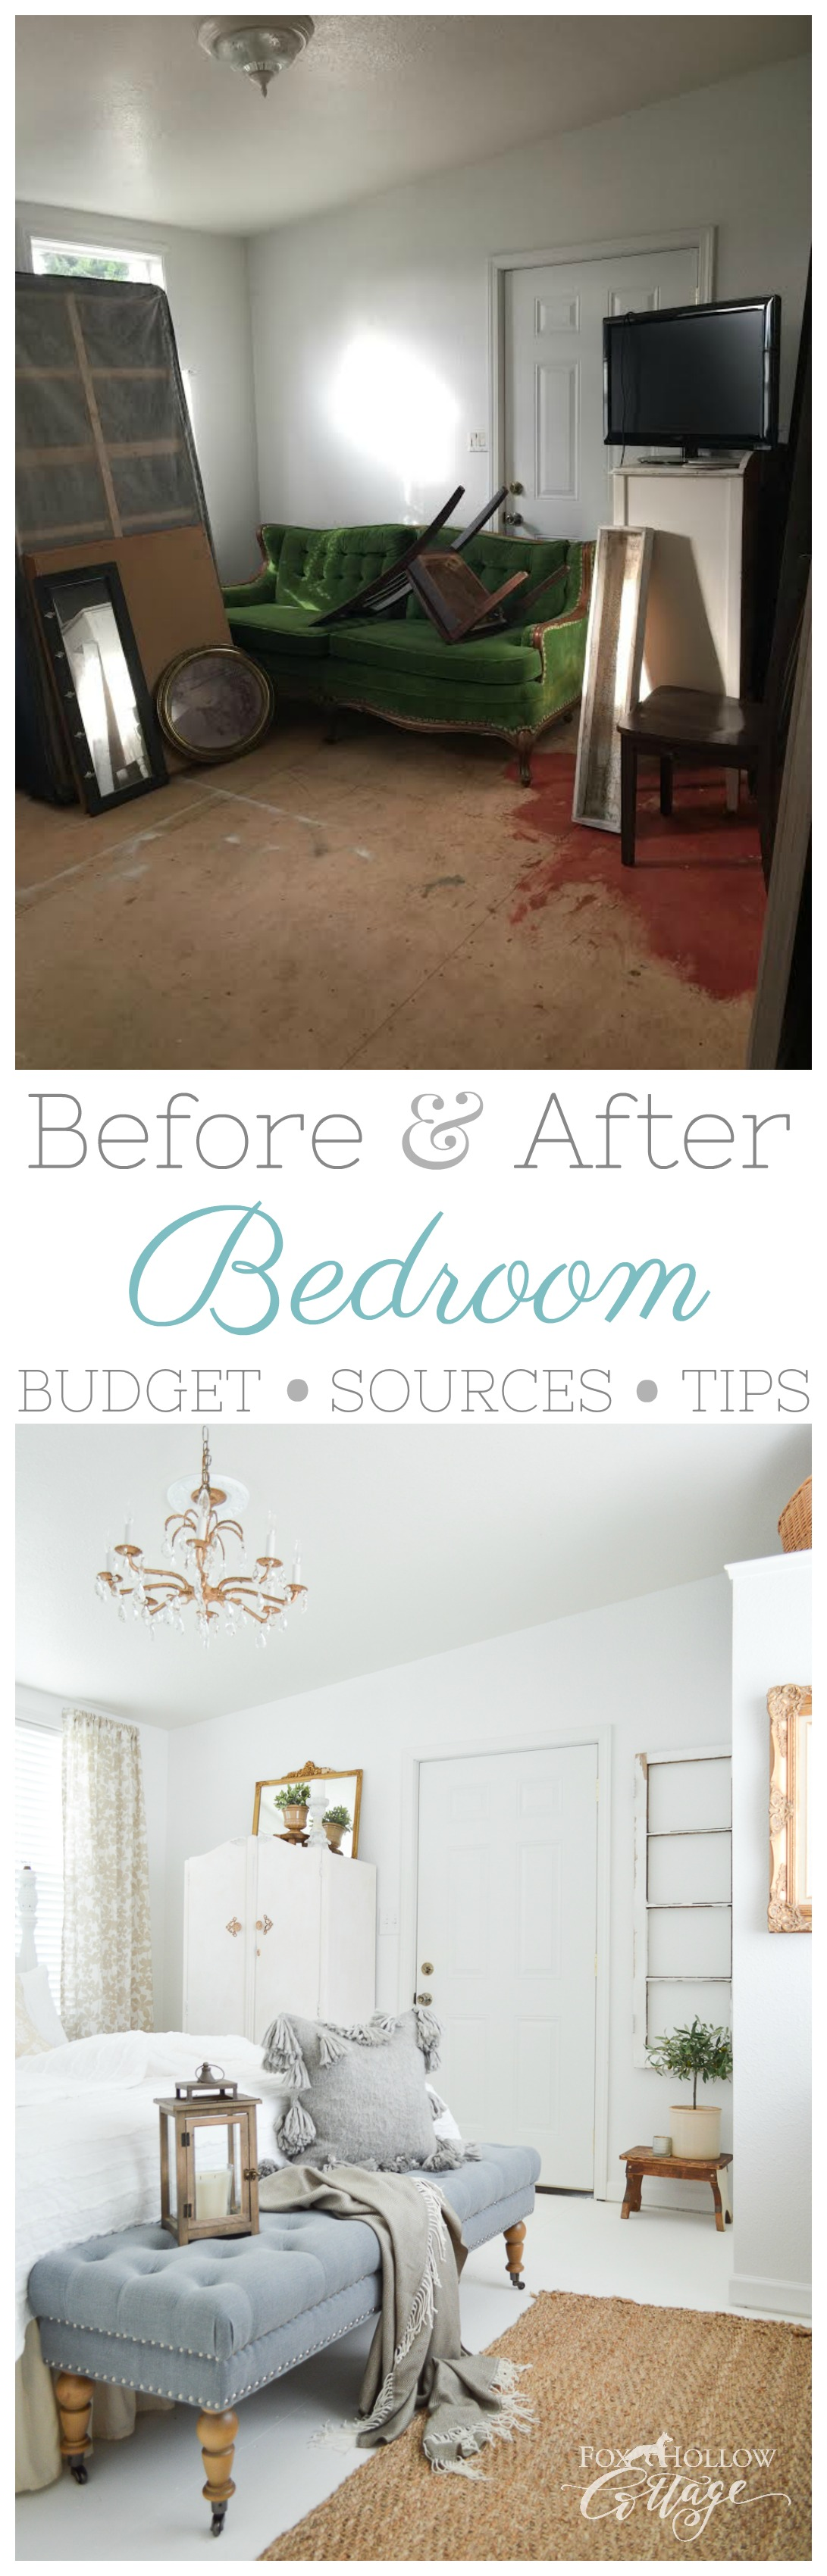 before and after bedroom makeover budget breakdown with costs sources tips and more